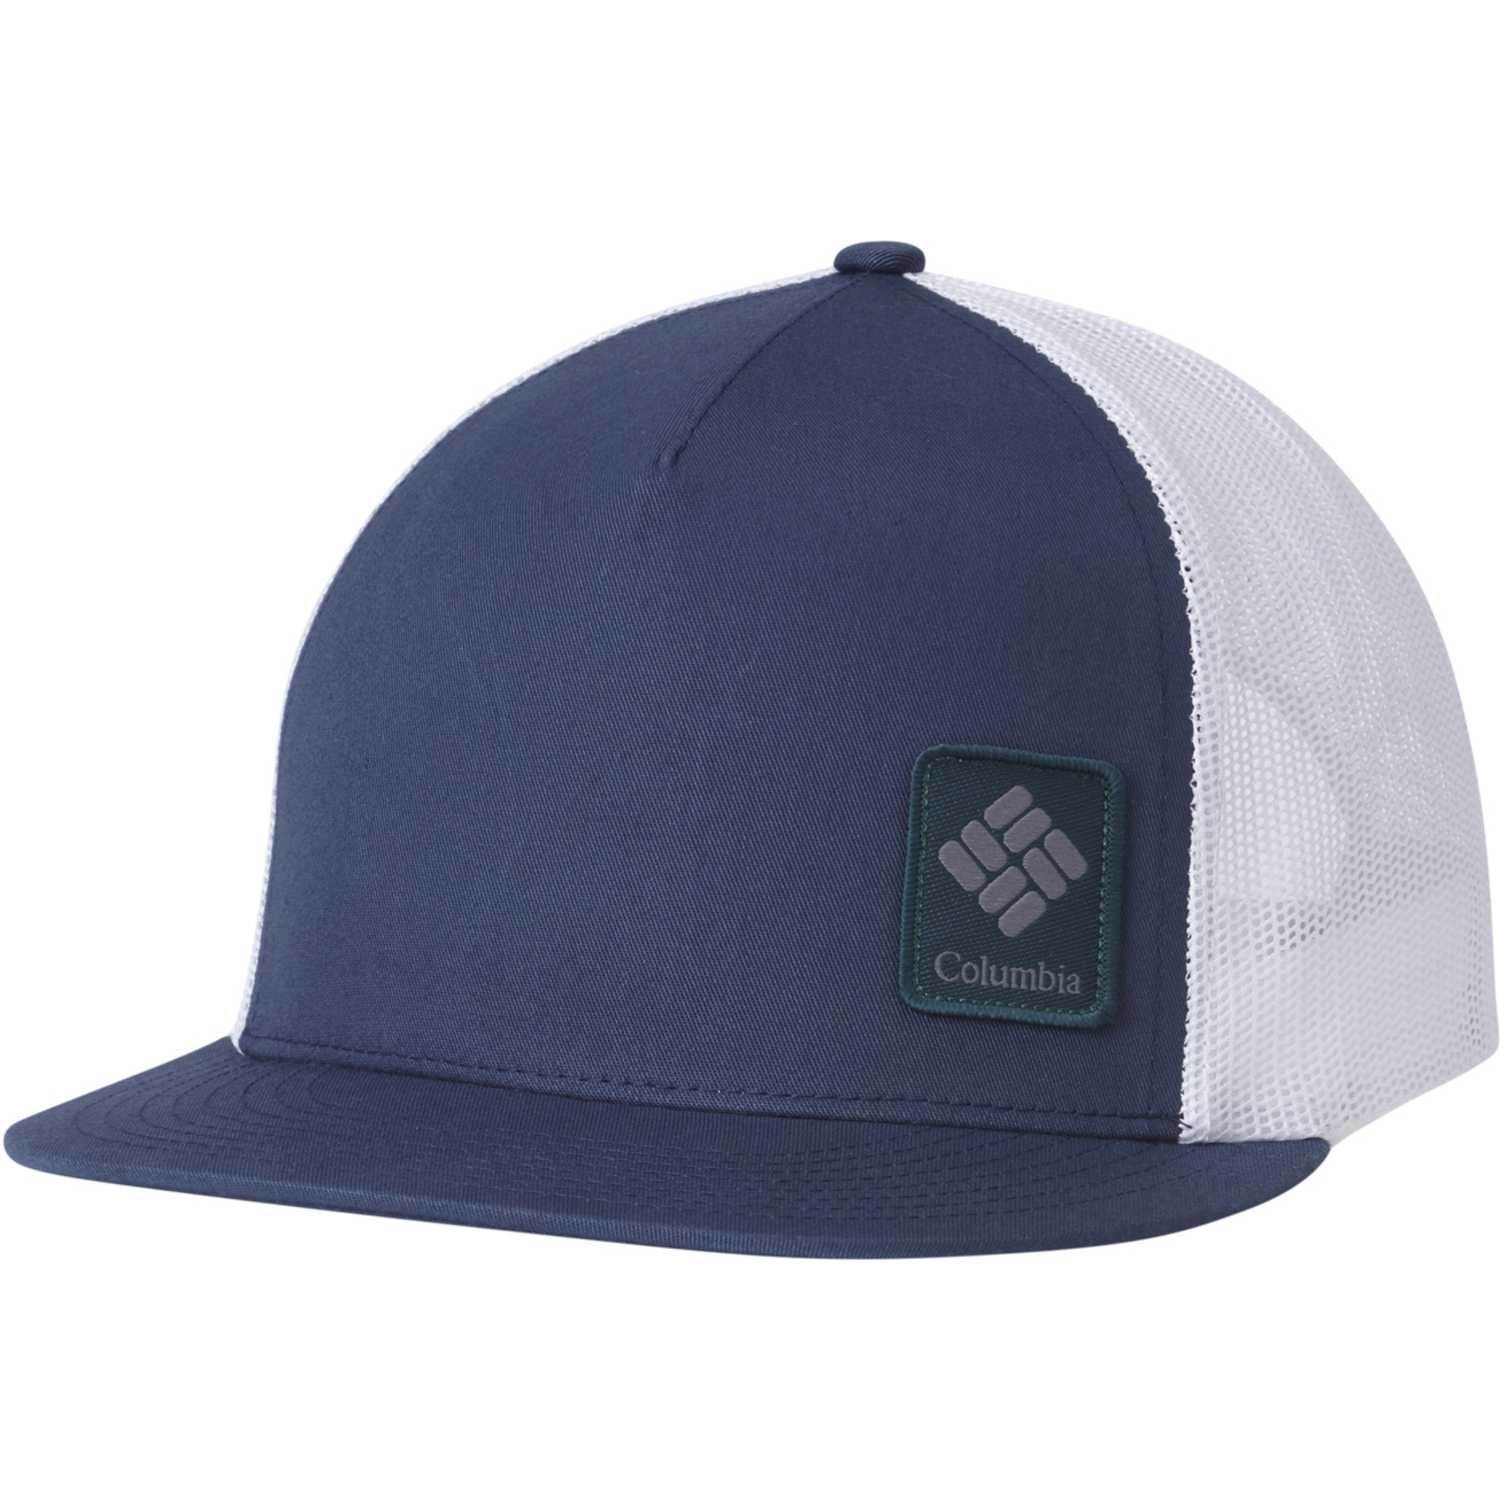 Gorro de Hombre Columbia Navy / Blanco ale creek snap back